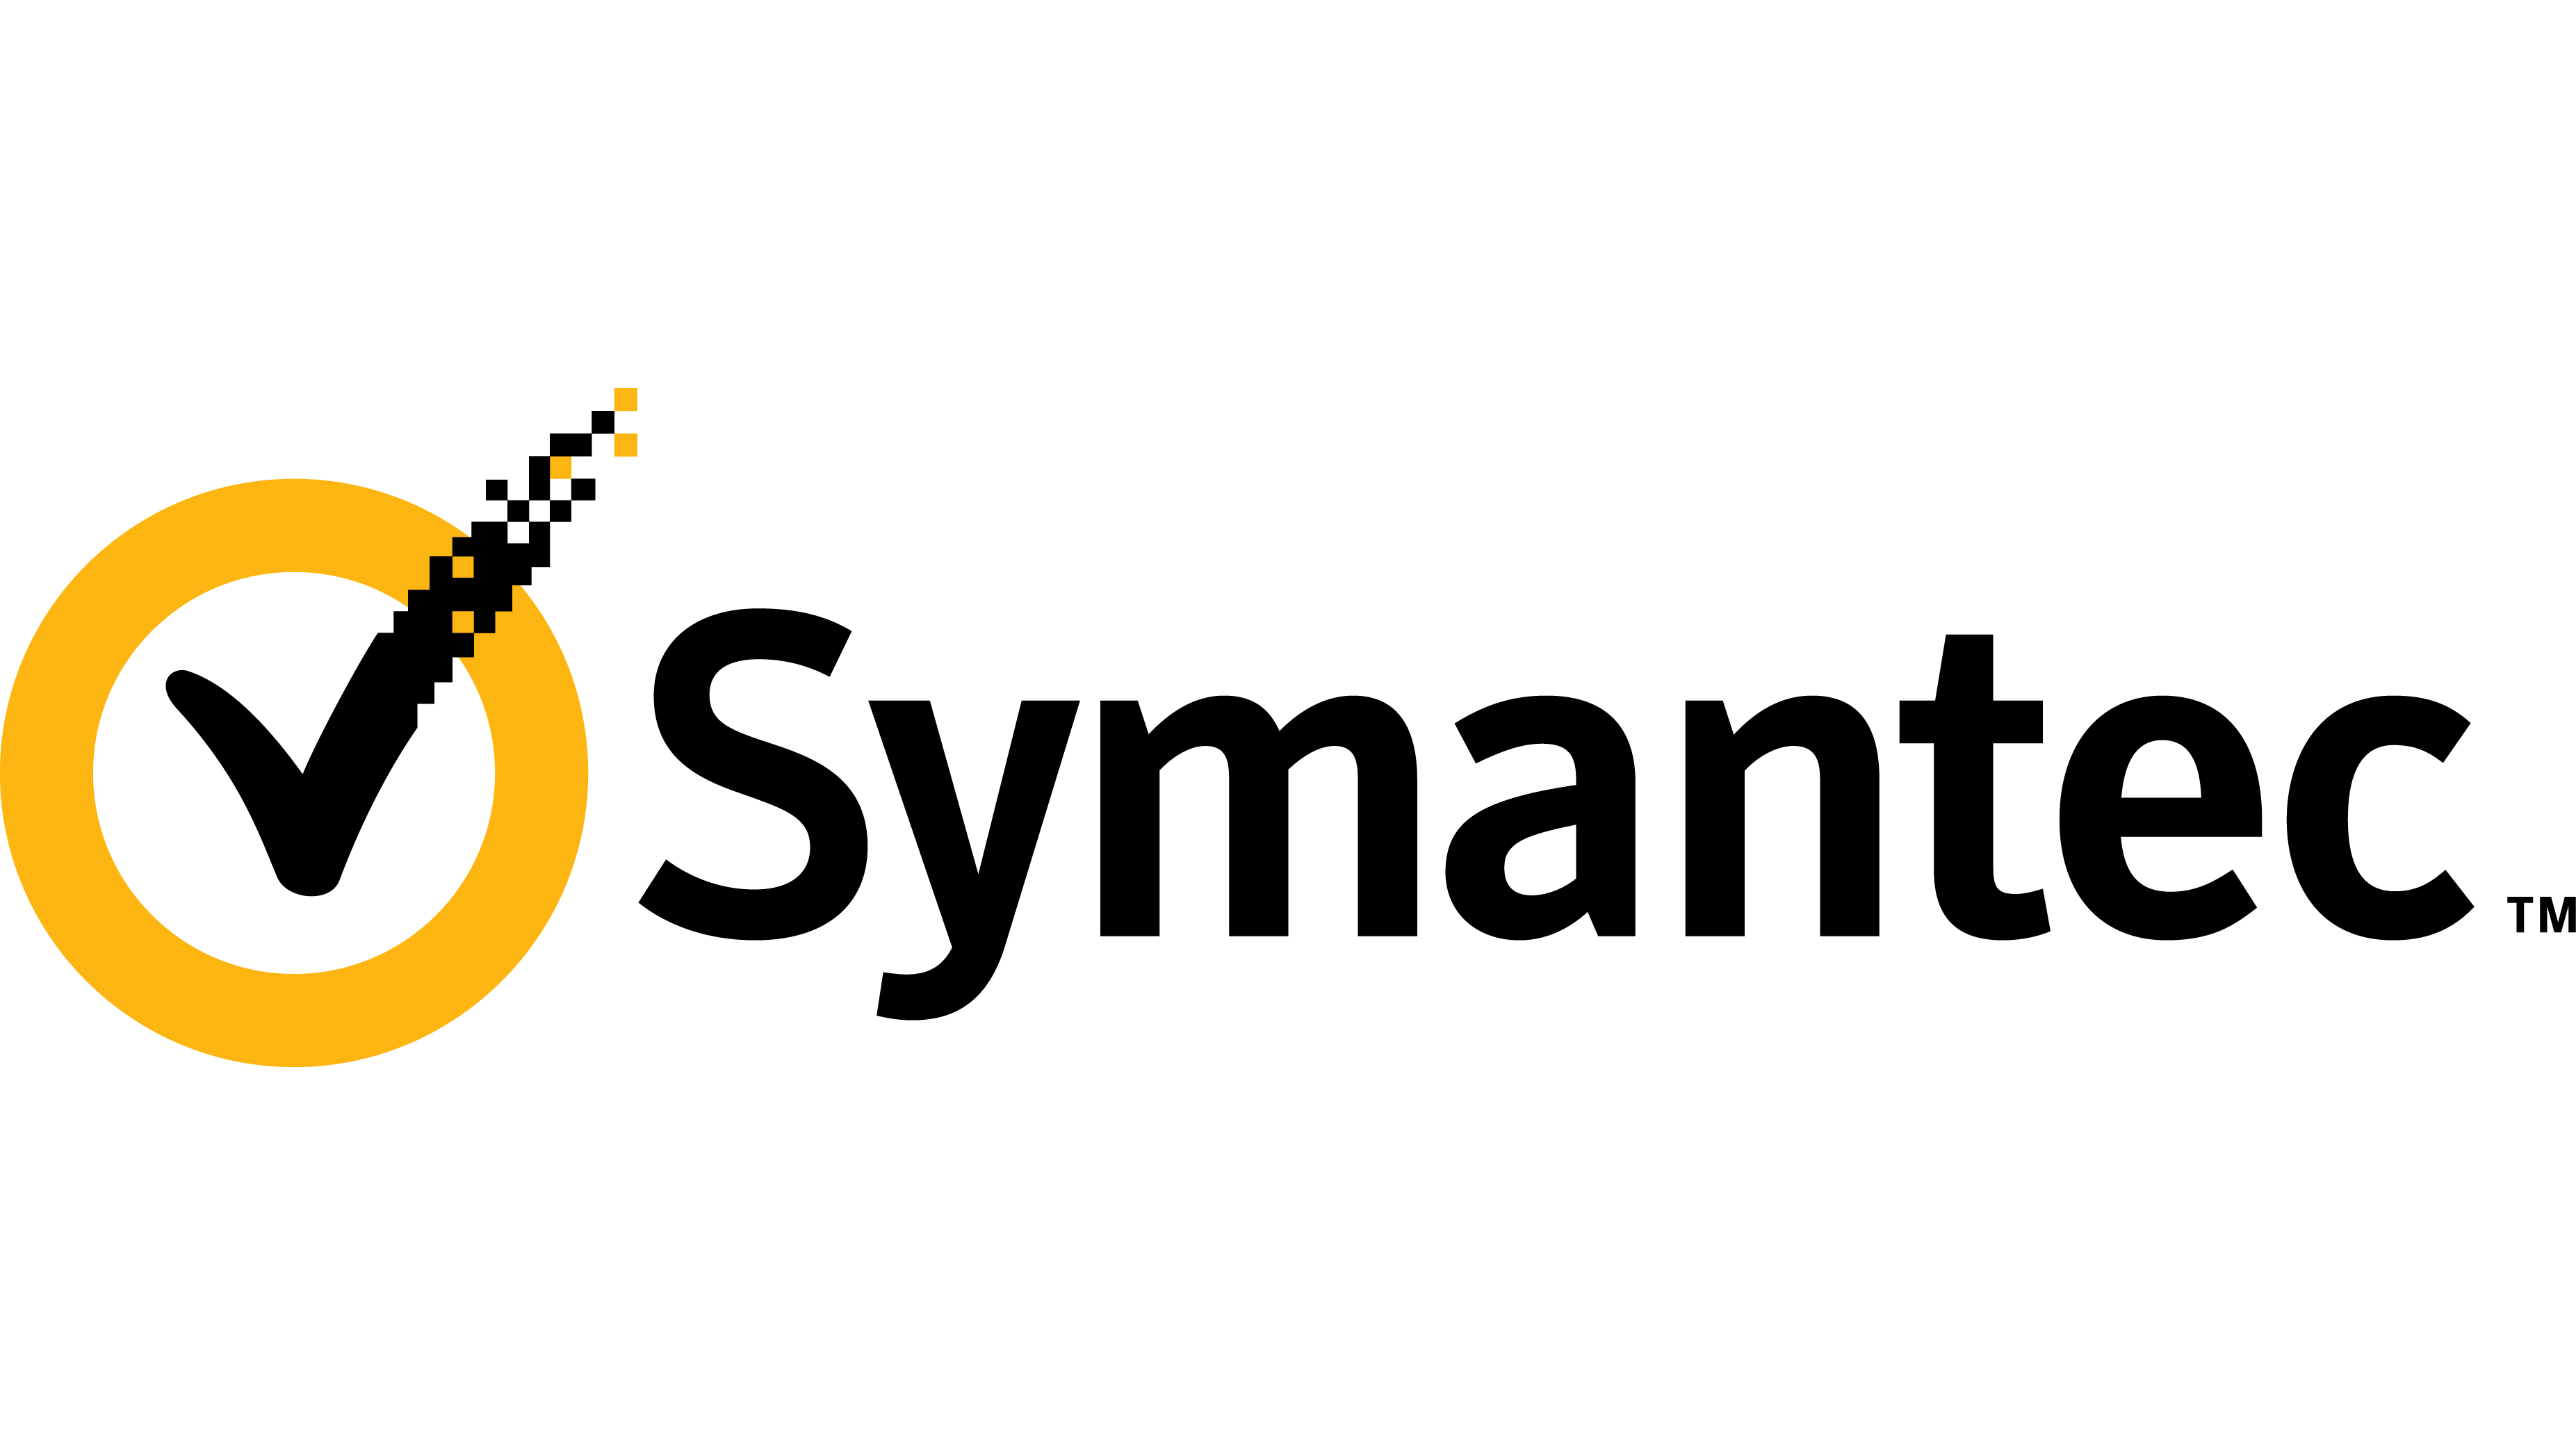 Did the Symantec Logo Cost 1.28 Billion? - Logocurio.us